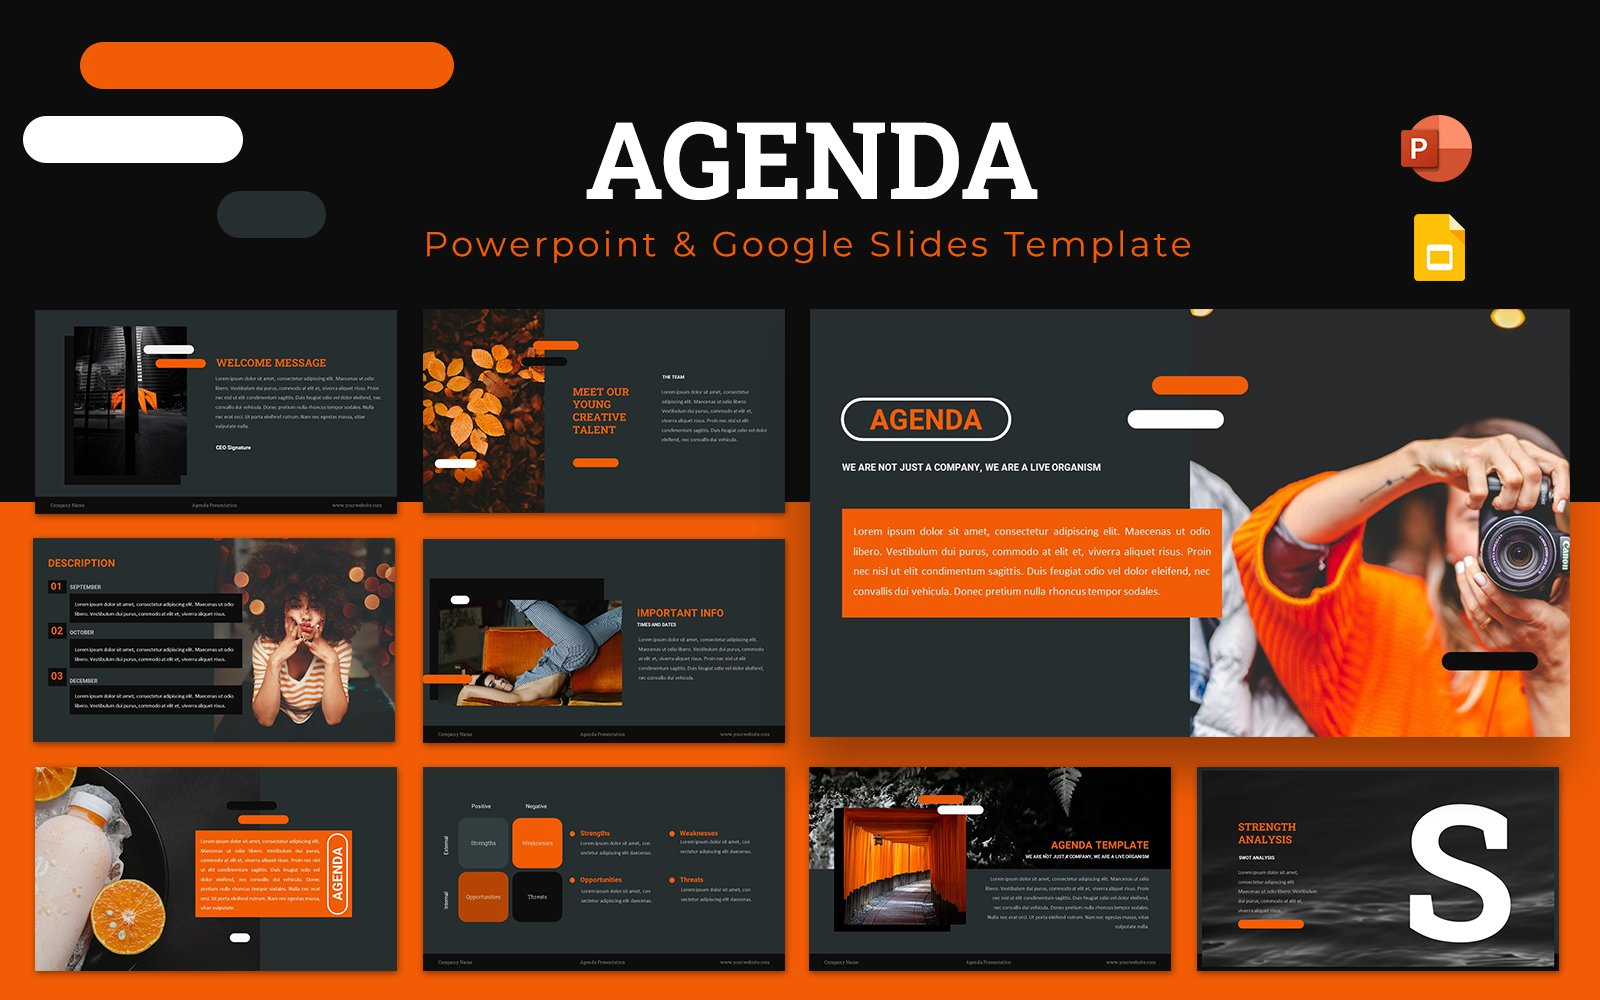 Agenda Powerpoint Presentation Template